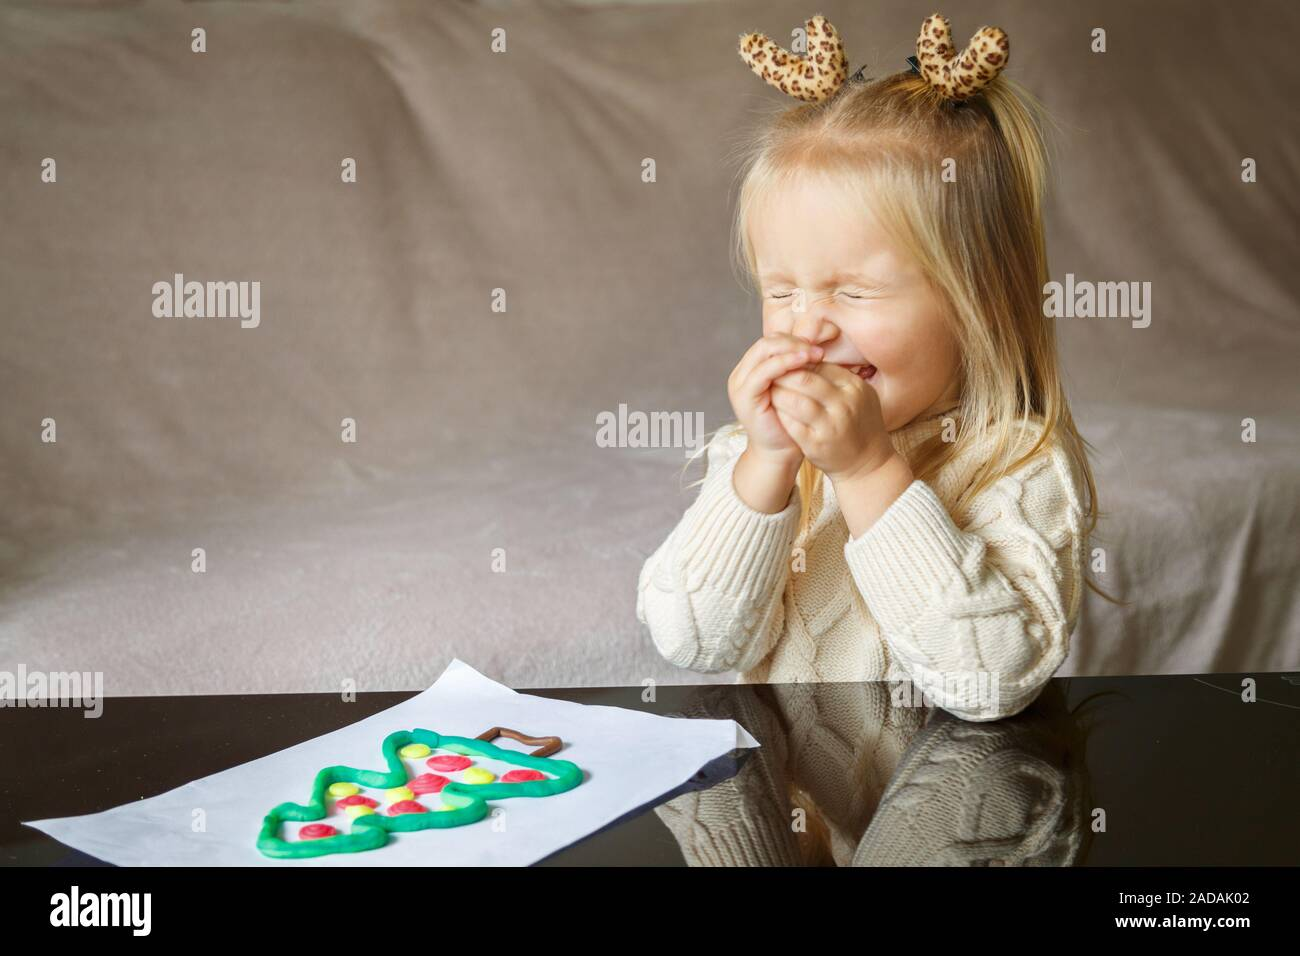 Adorable little girl with blonde hair playing with clay and making christmas tree at home Stock Photo